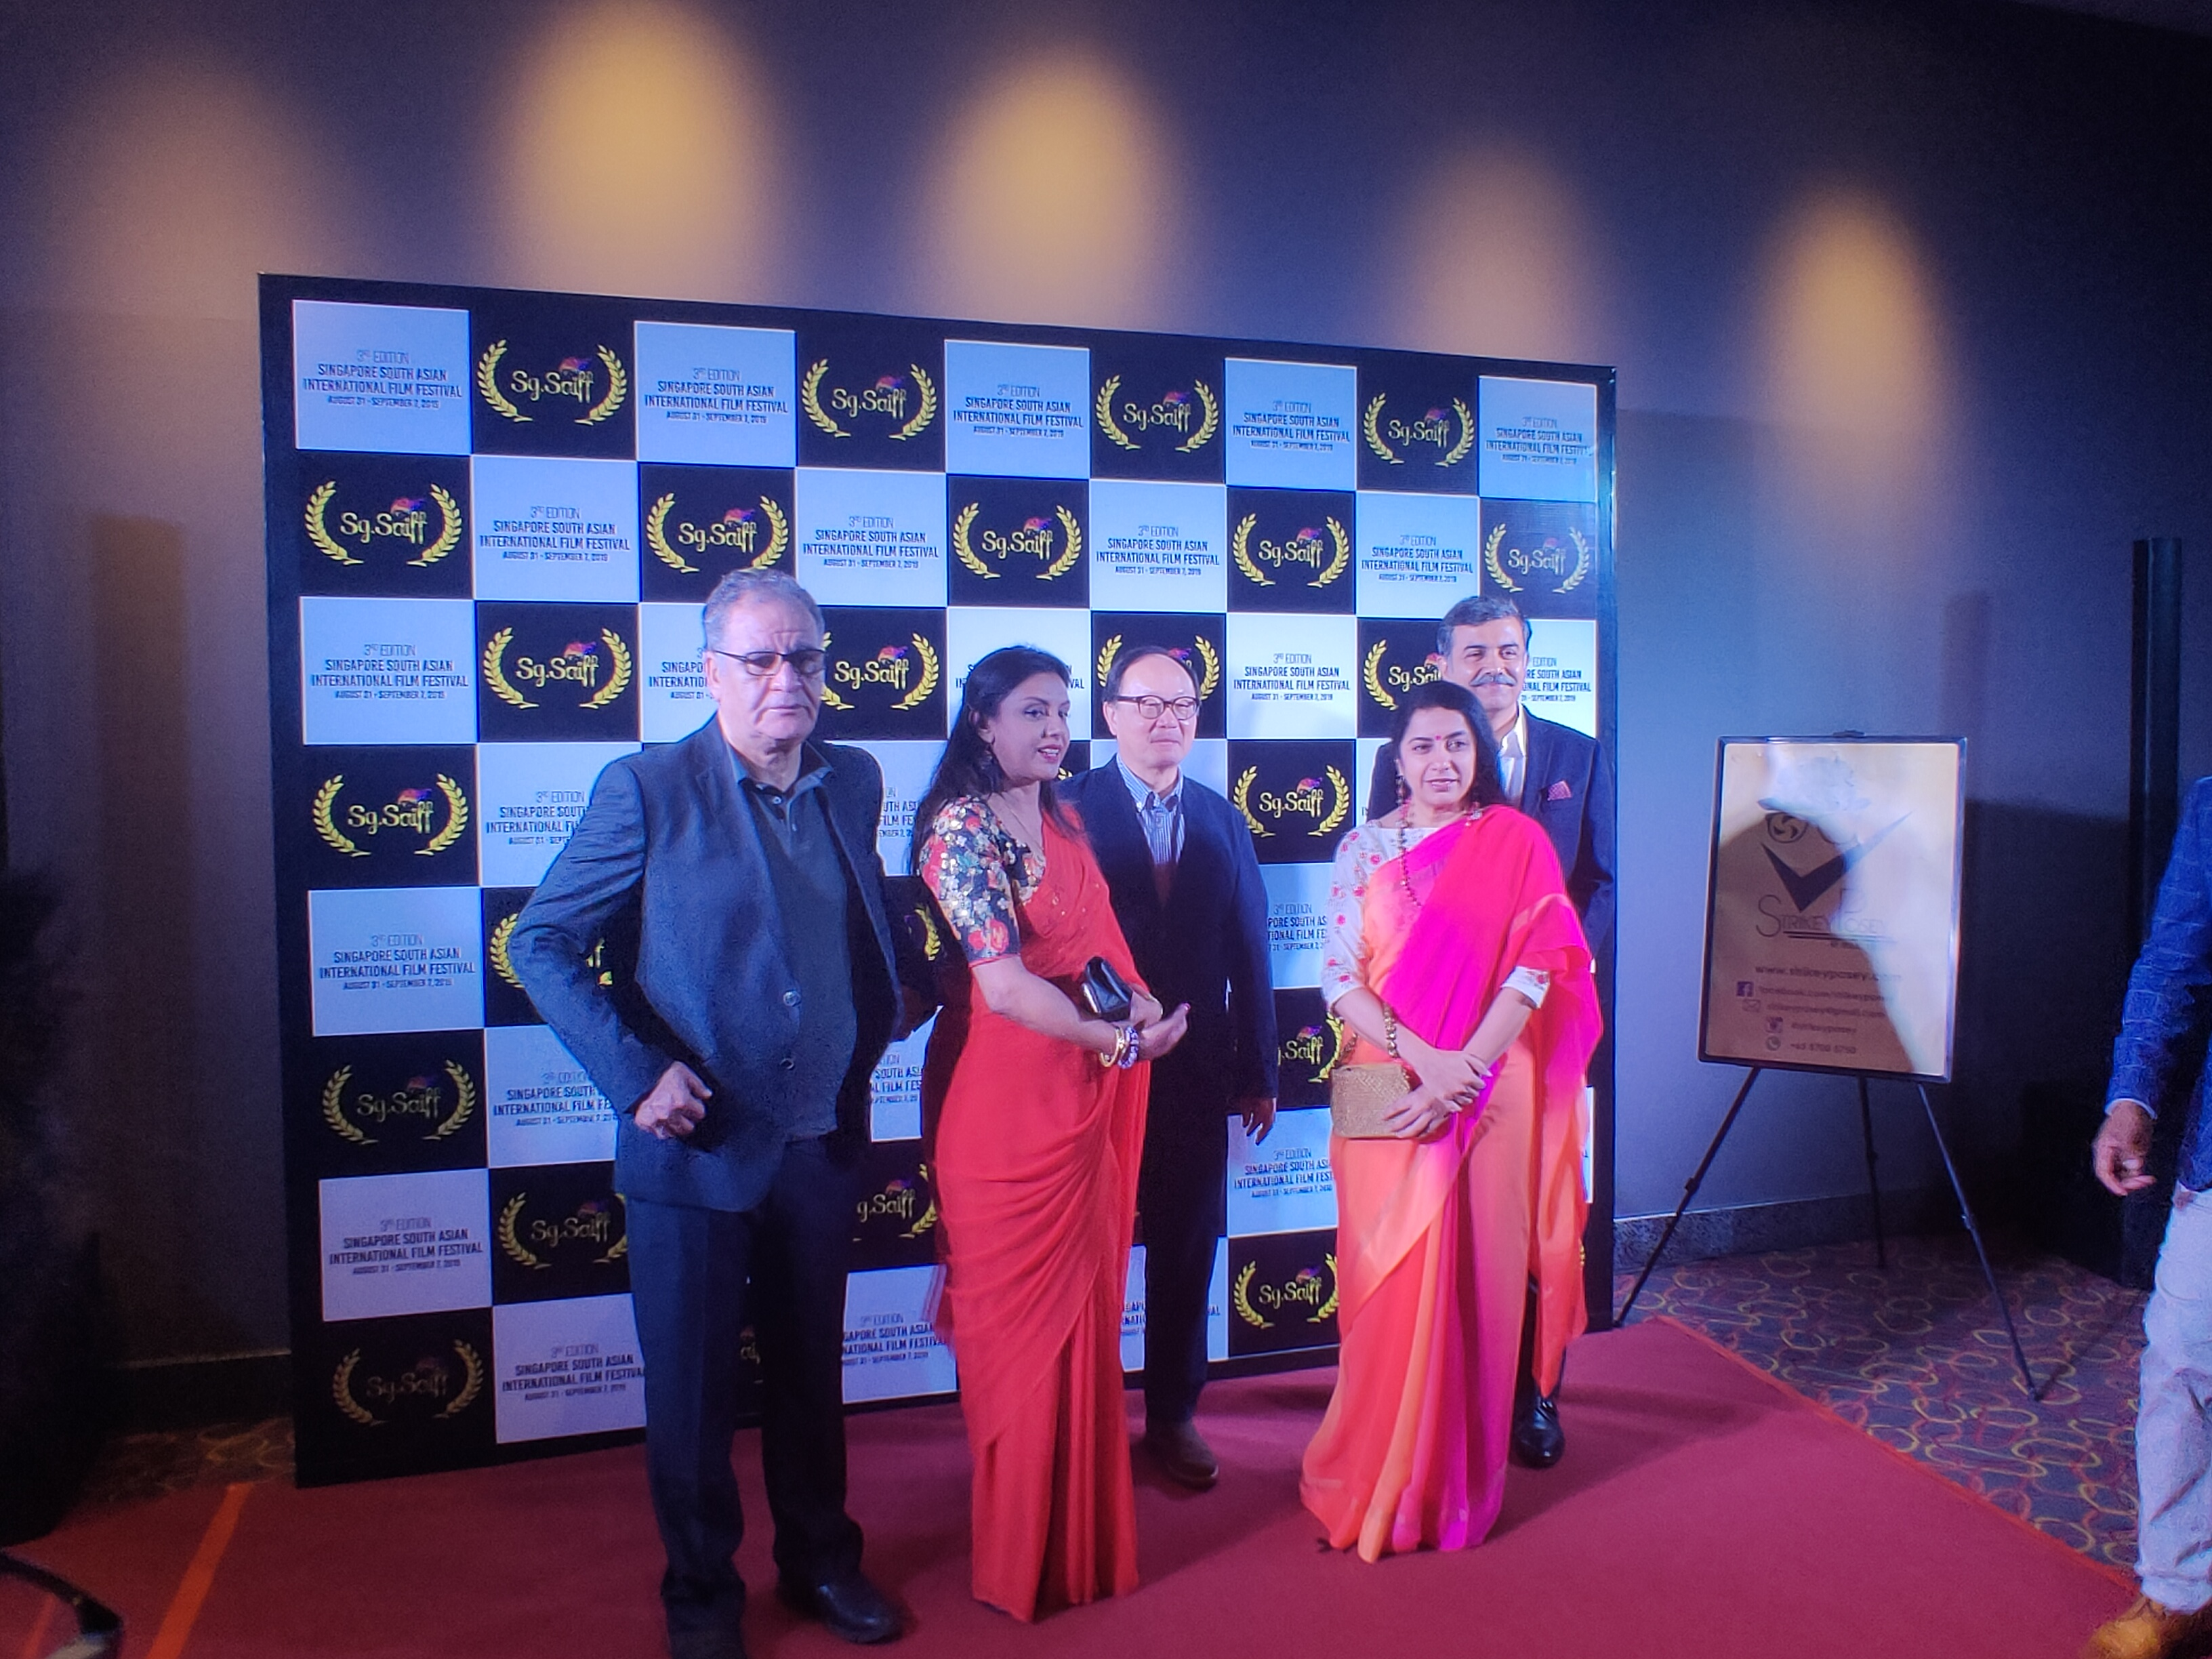 Jury Panel members at the Red Carpet. From left to right: Rasoul Sadr Ameli, Yashoda Wimaldharma, Jury Chairman Roger Garcia, Suhasini Maniratram, Rajiv Menon. Photo courtesy: Connected to India